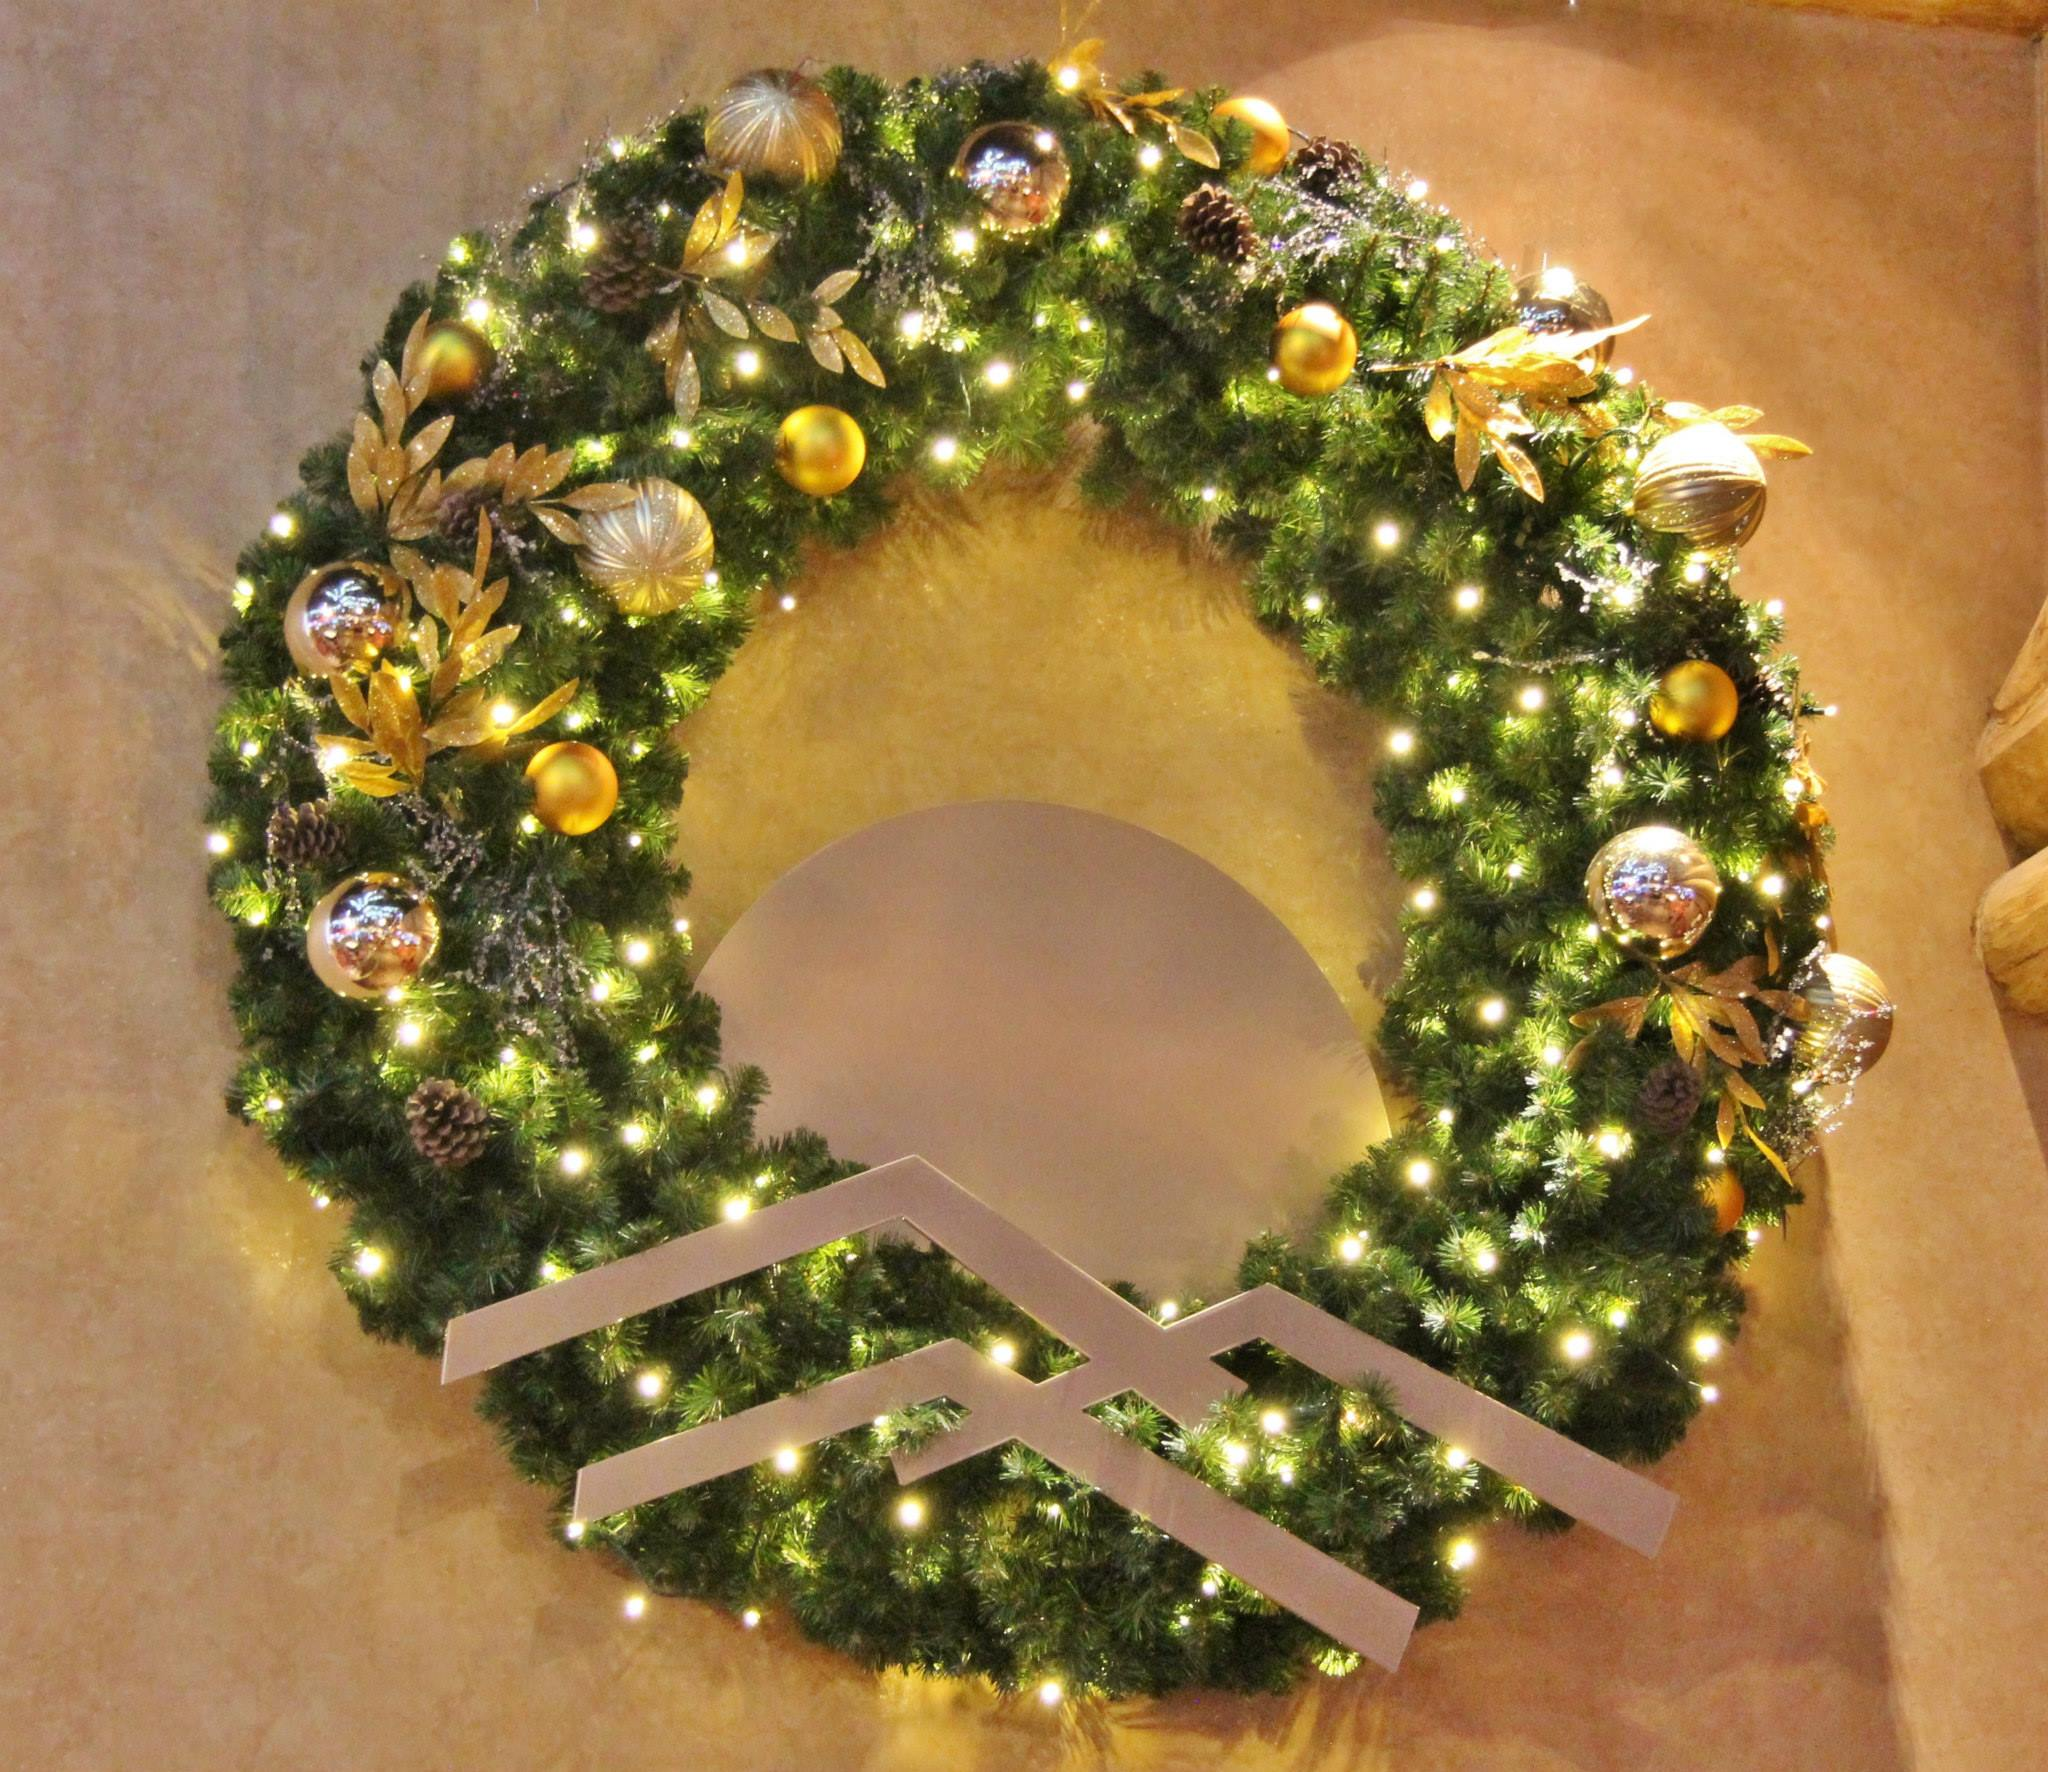 Large Outdoor Commercial Christmas Wreaths - Downtown Decorations